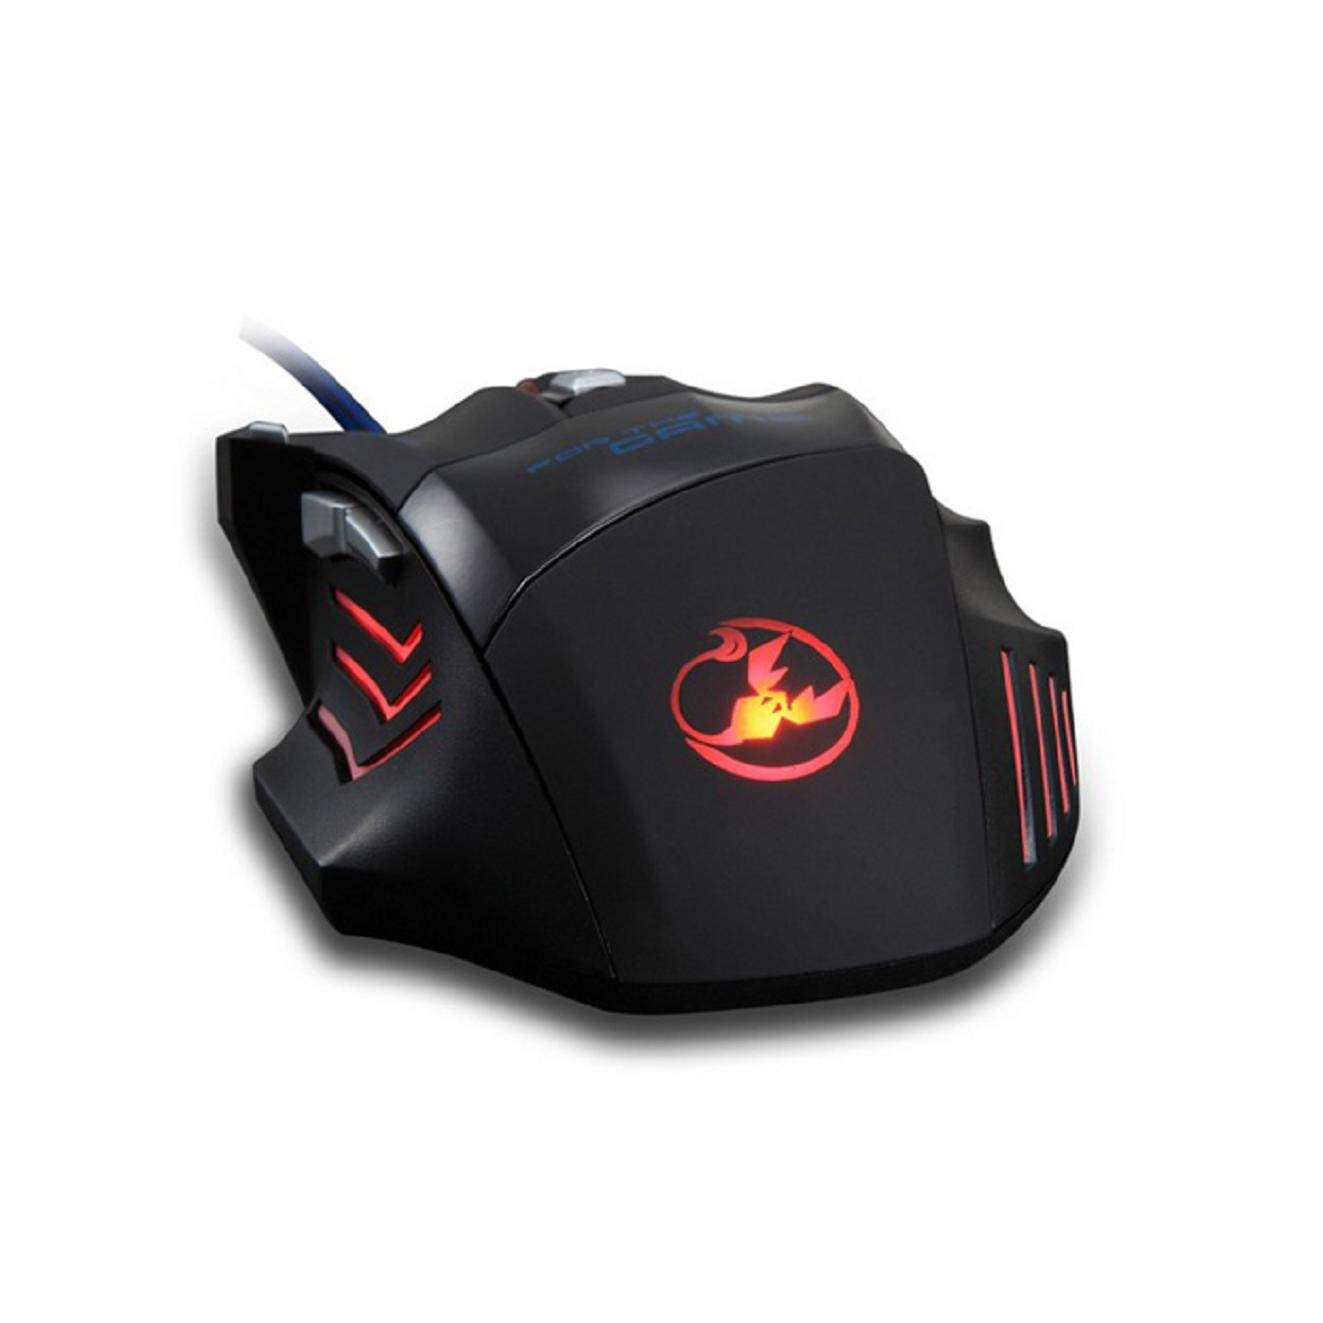 b03b9b60e61 ... 5500 DPI 7 Button LED Optical USB Wired Gaming Mouse Mice for Pro Gamer.  -14%. 🔍. 1; 2